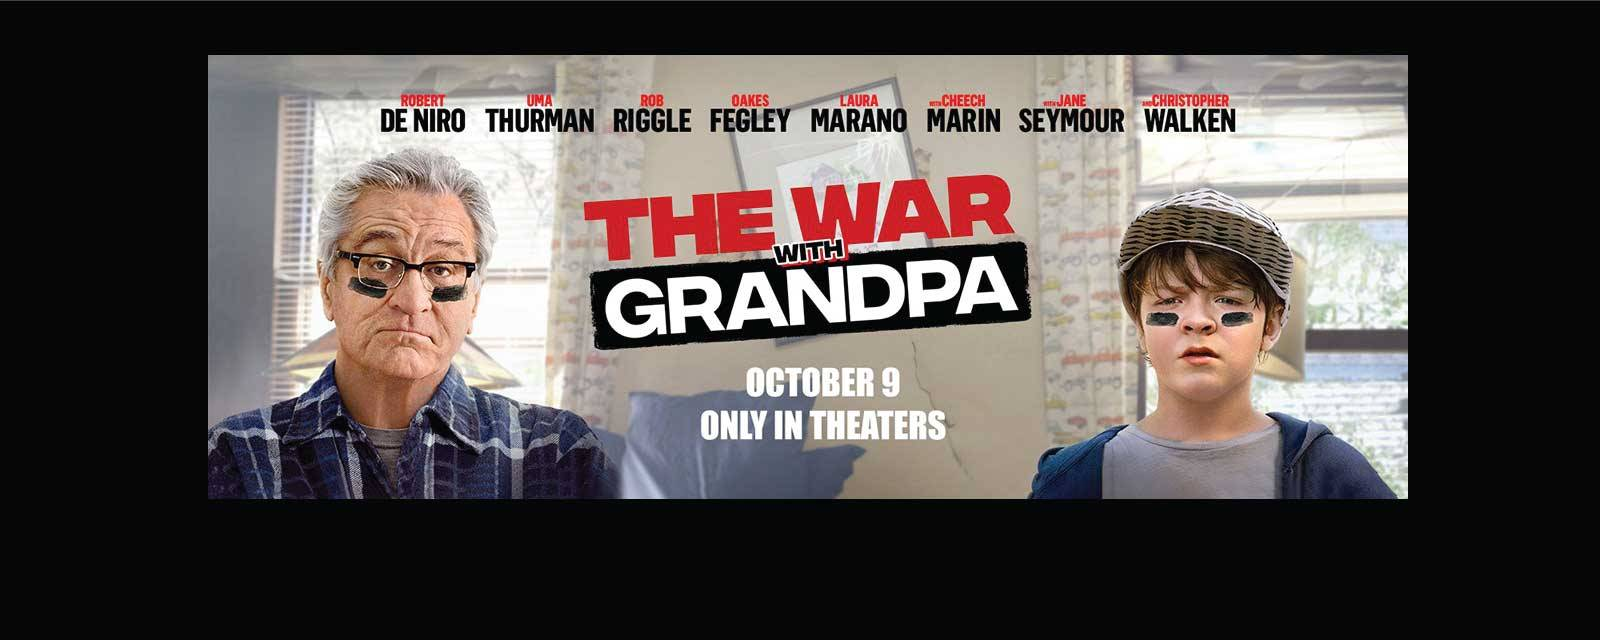 The War With Grandpa image